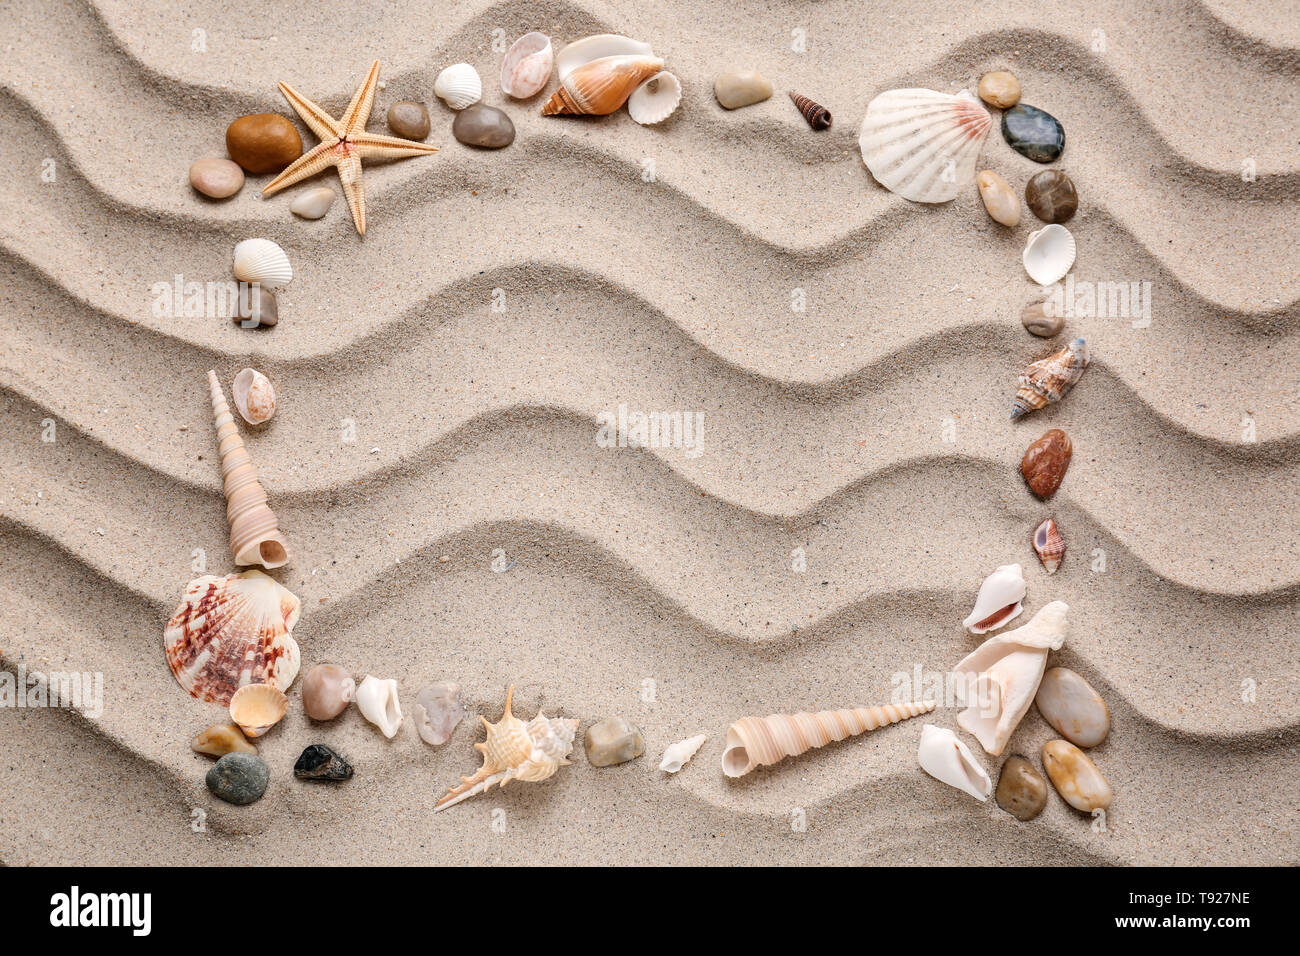 Frame made of different sea shells and stones on sand - Stock Image